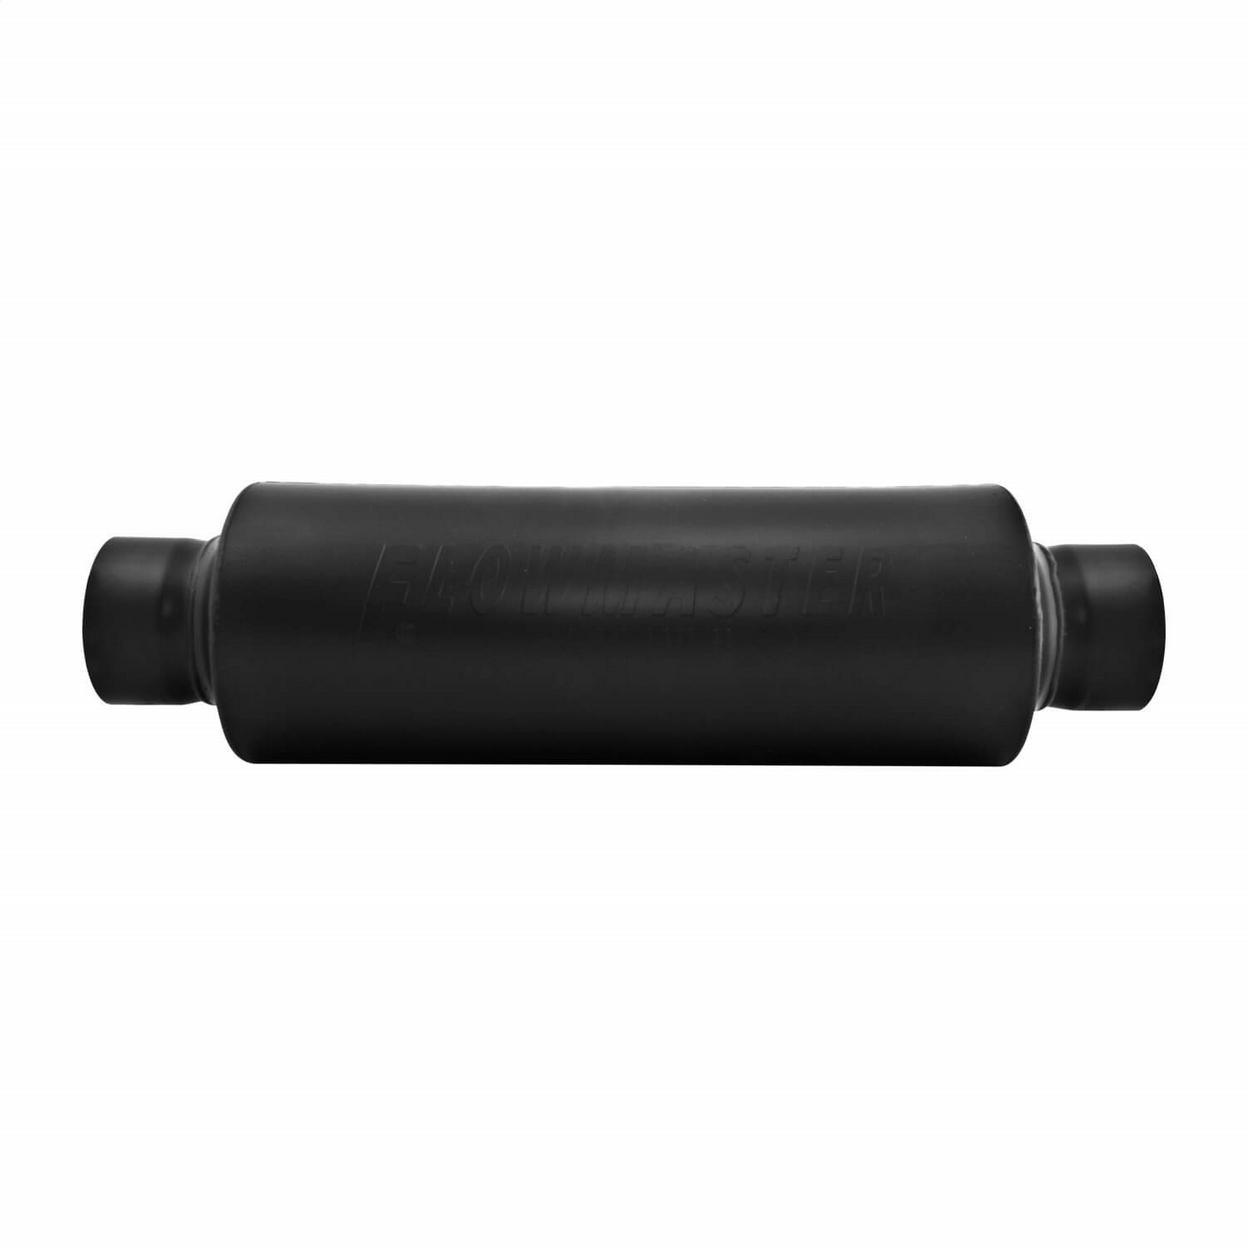 Pro Series Muffler - 3.00 Center In / 3.00 Center Out - Moderate Sound